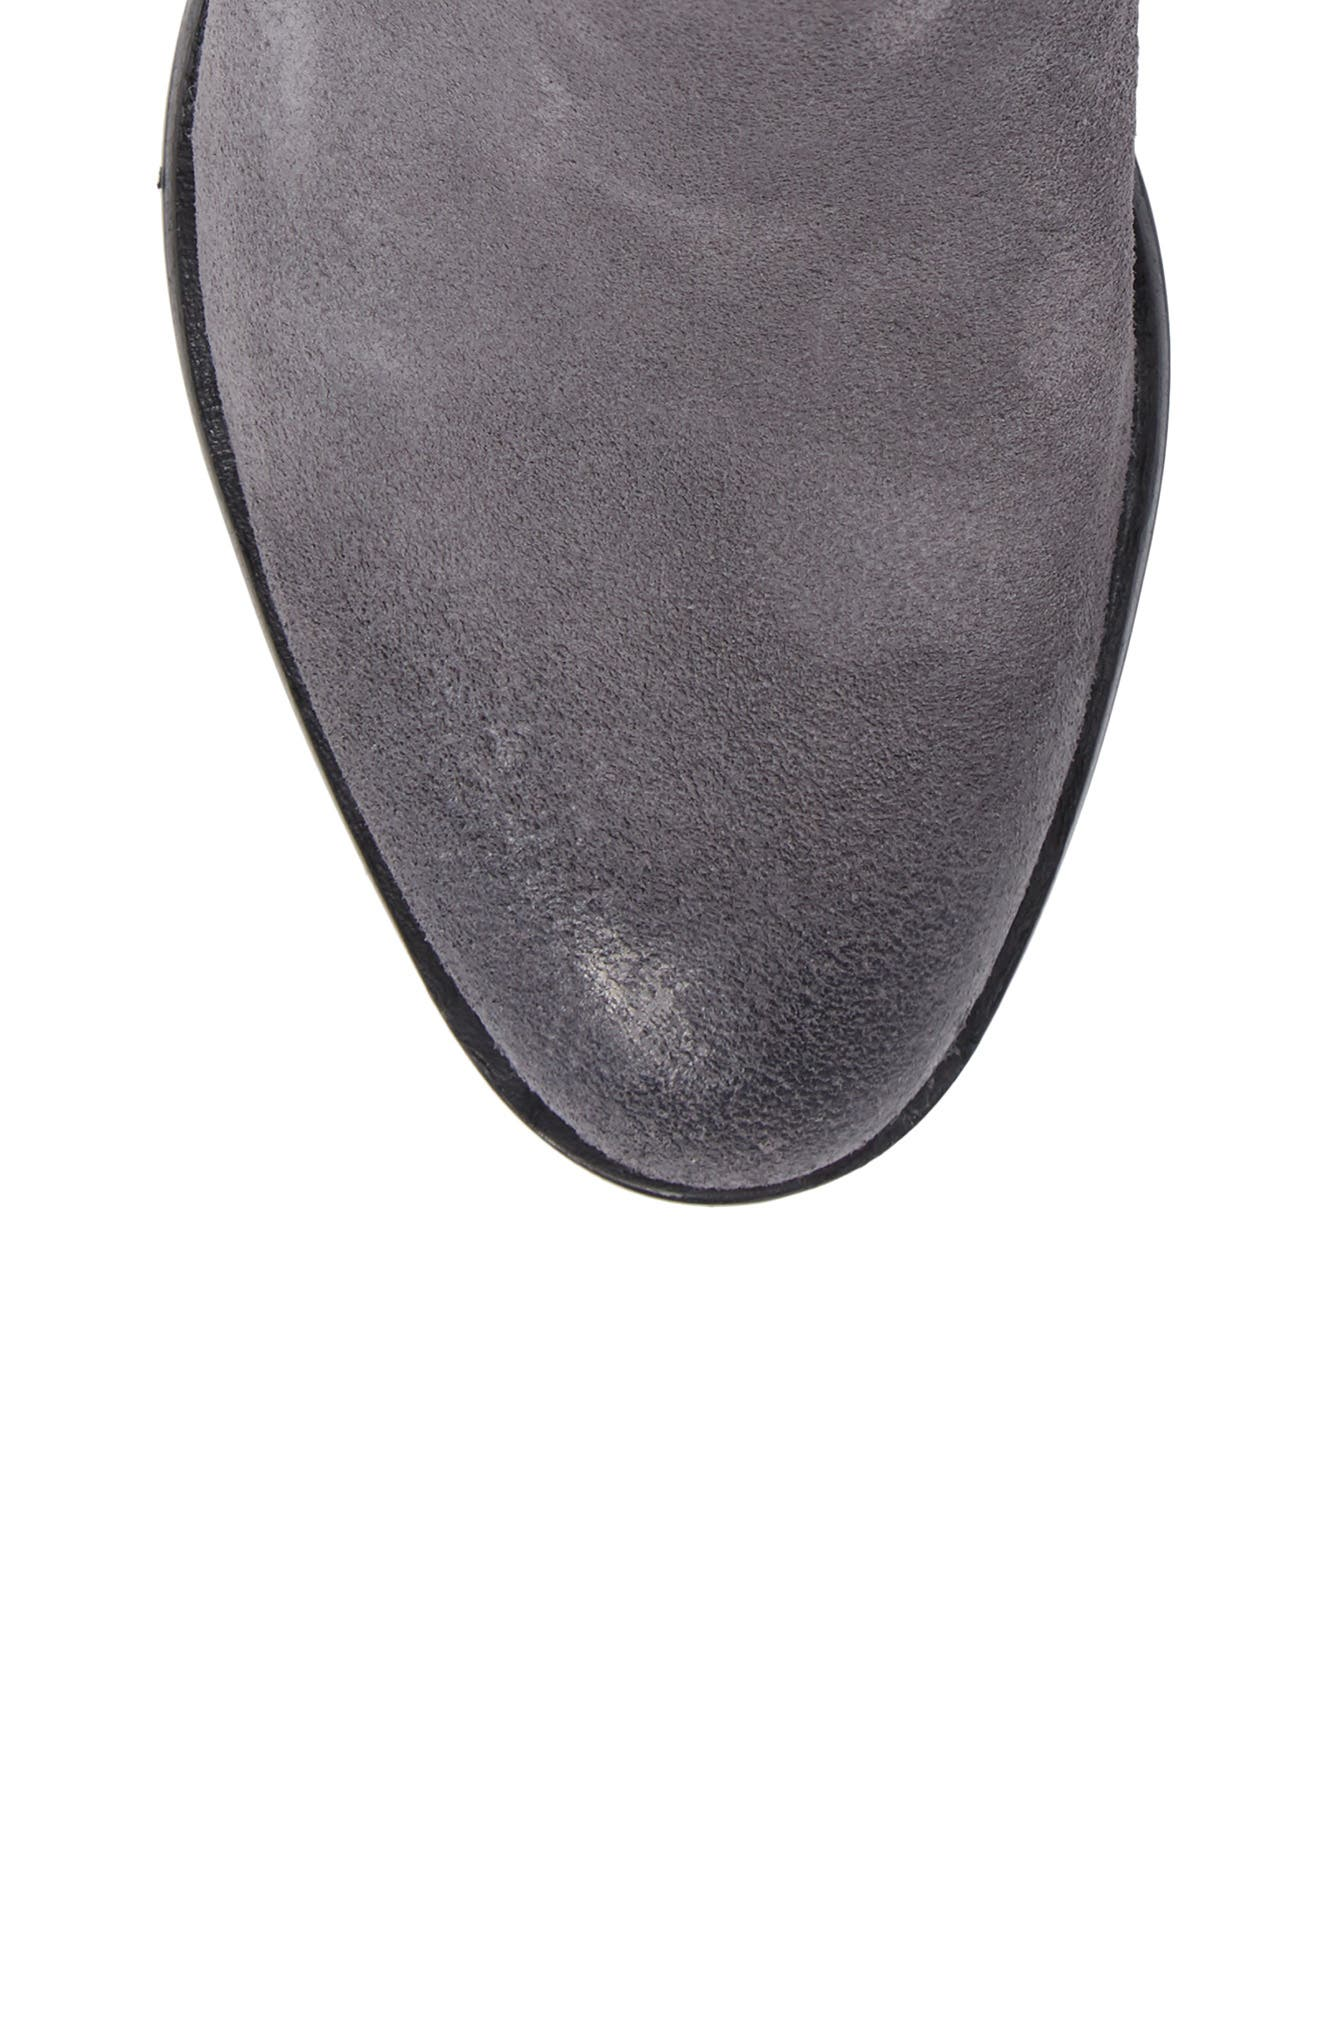 After Hours Chelsea Boot,                             Alternate thumbnail 23, color,